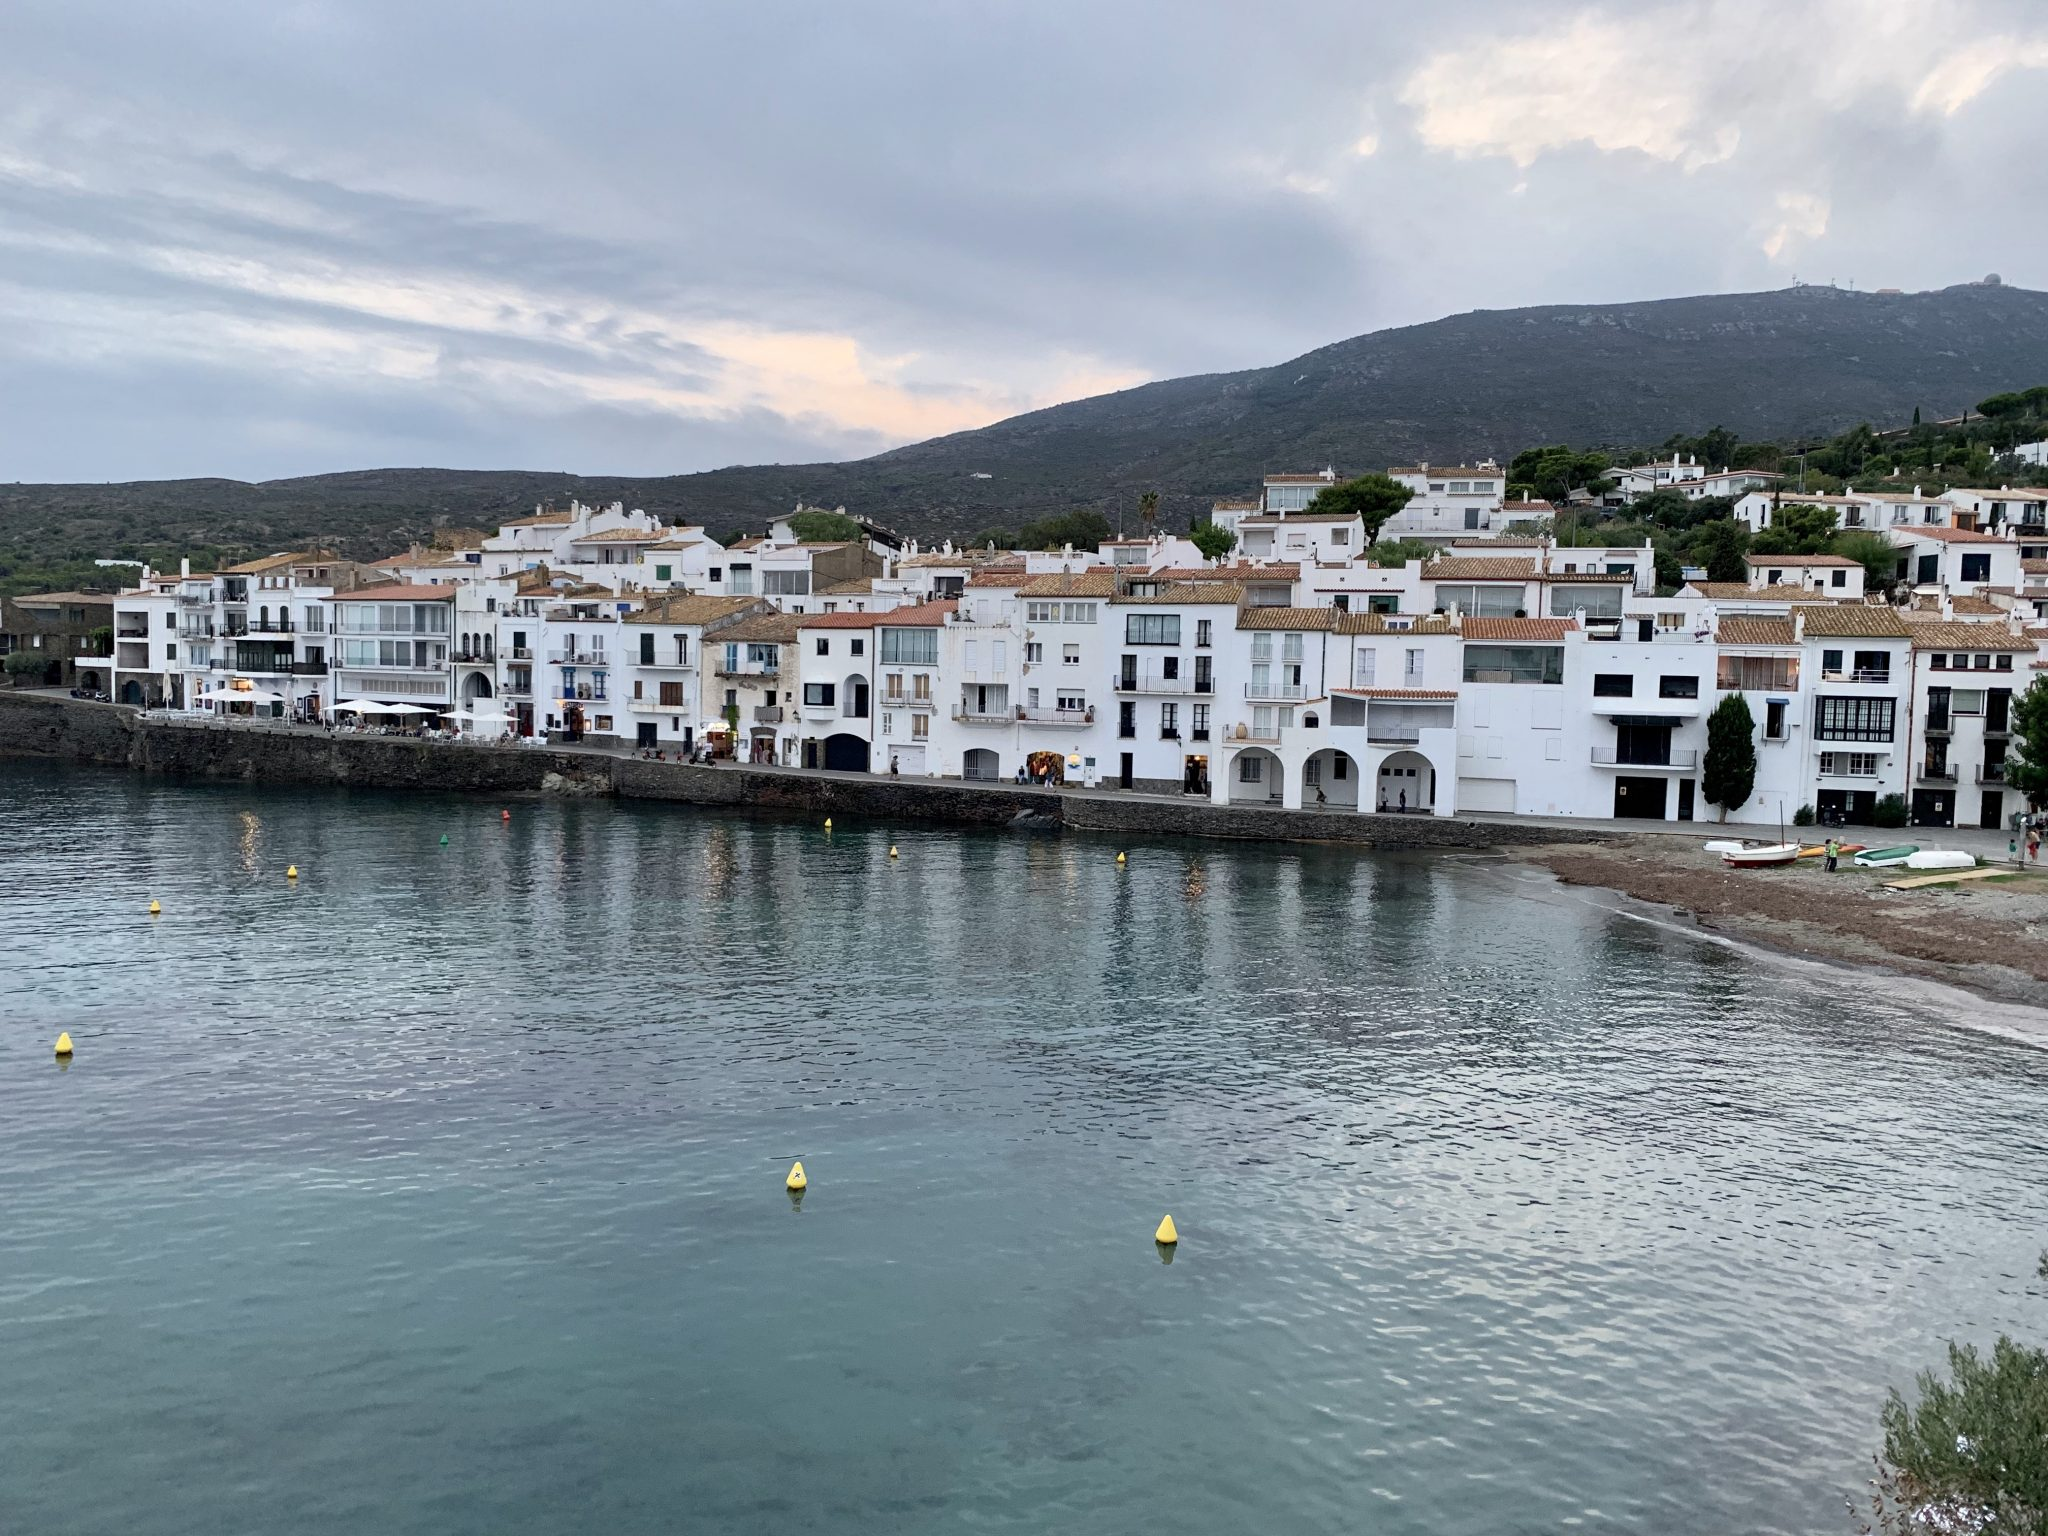 Sunset view over the town of Cadaques.